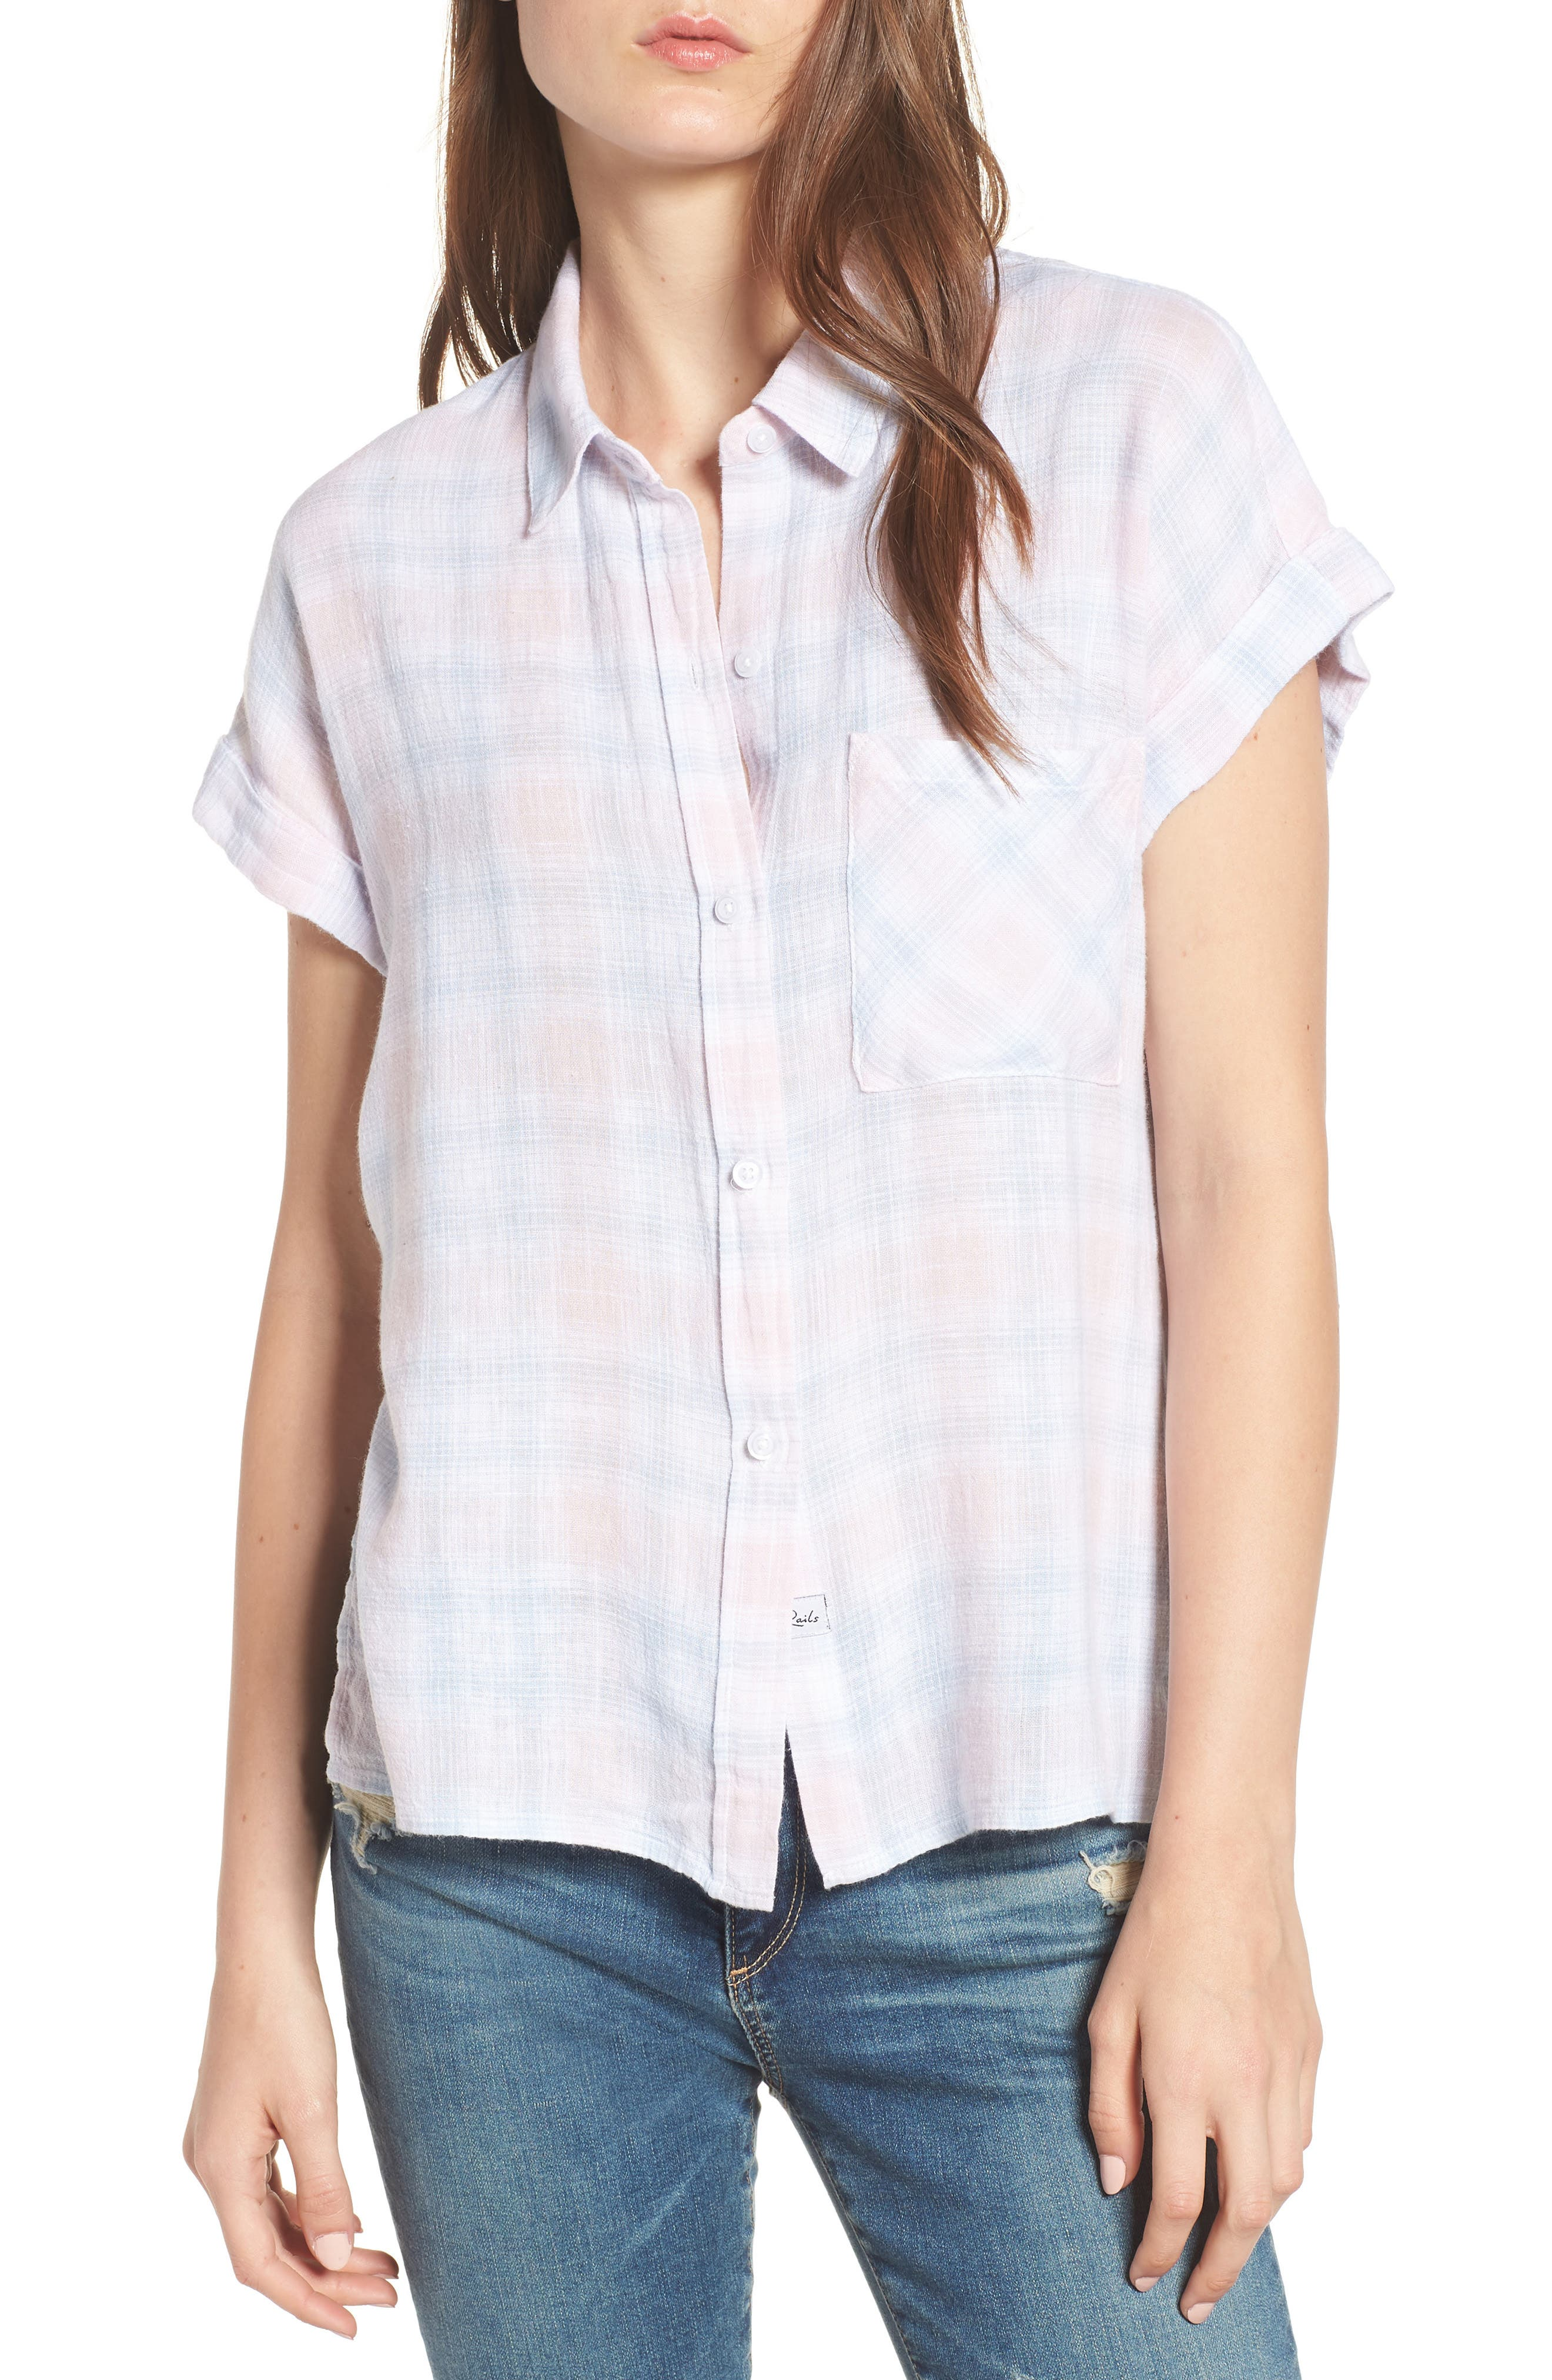 Whitney Shirt,                         Main,                         color, White Blush Sky